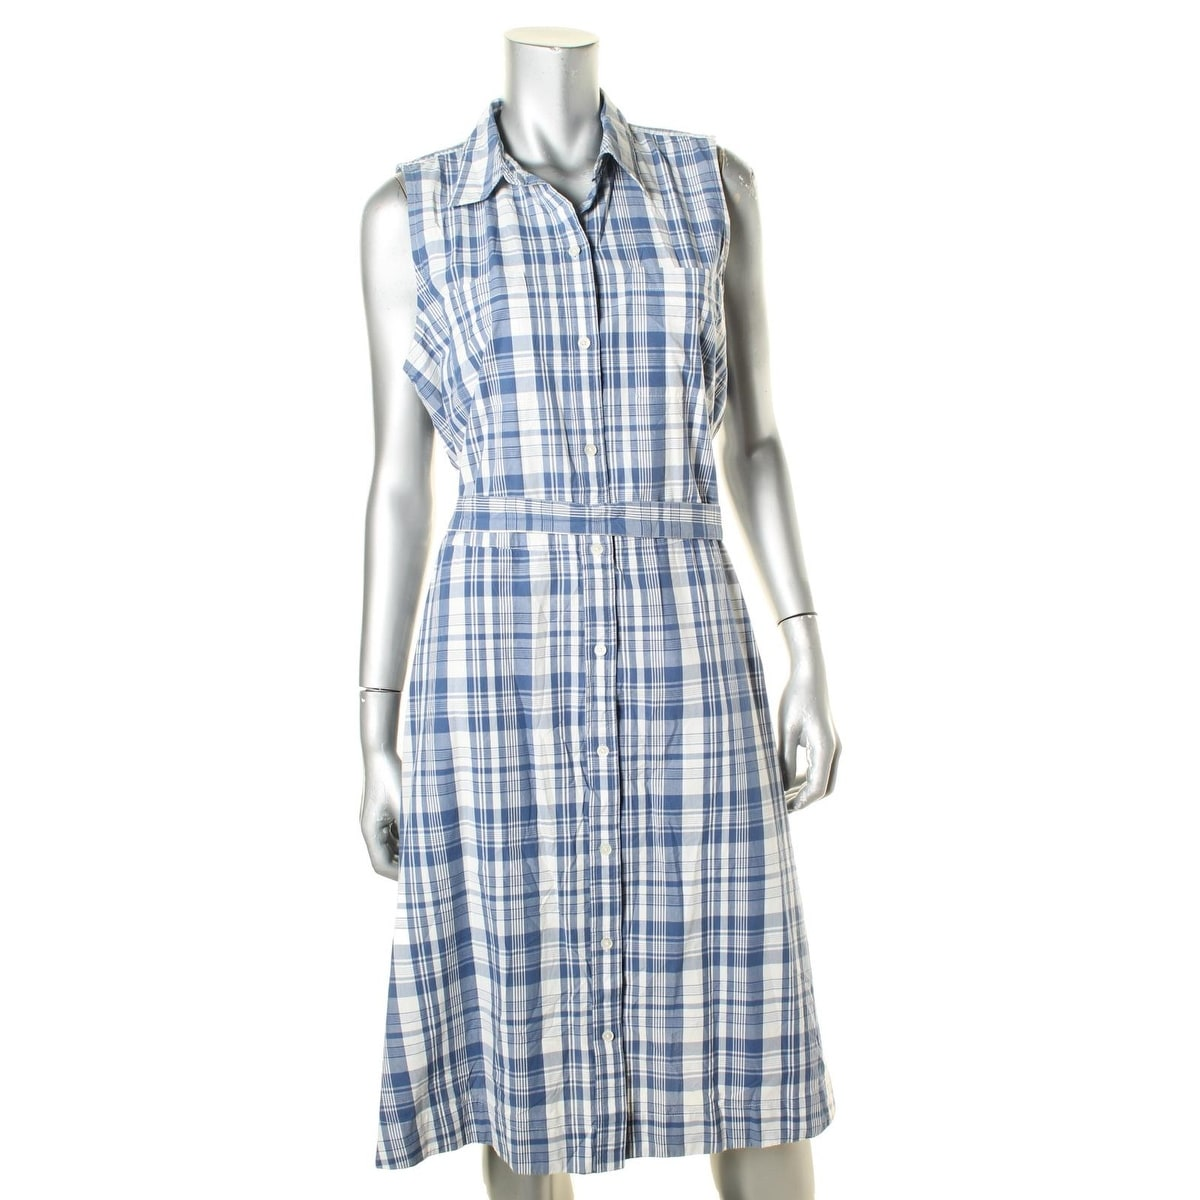 Shop American Living Womens Shirtdress Plaid Tie Front Free